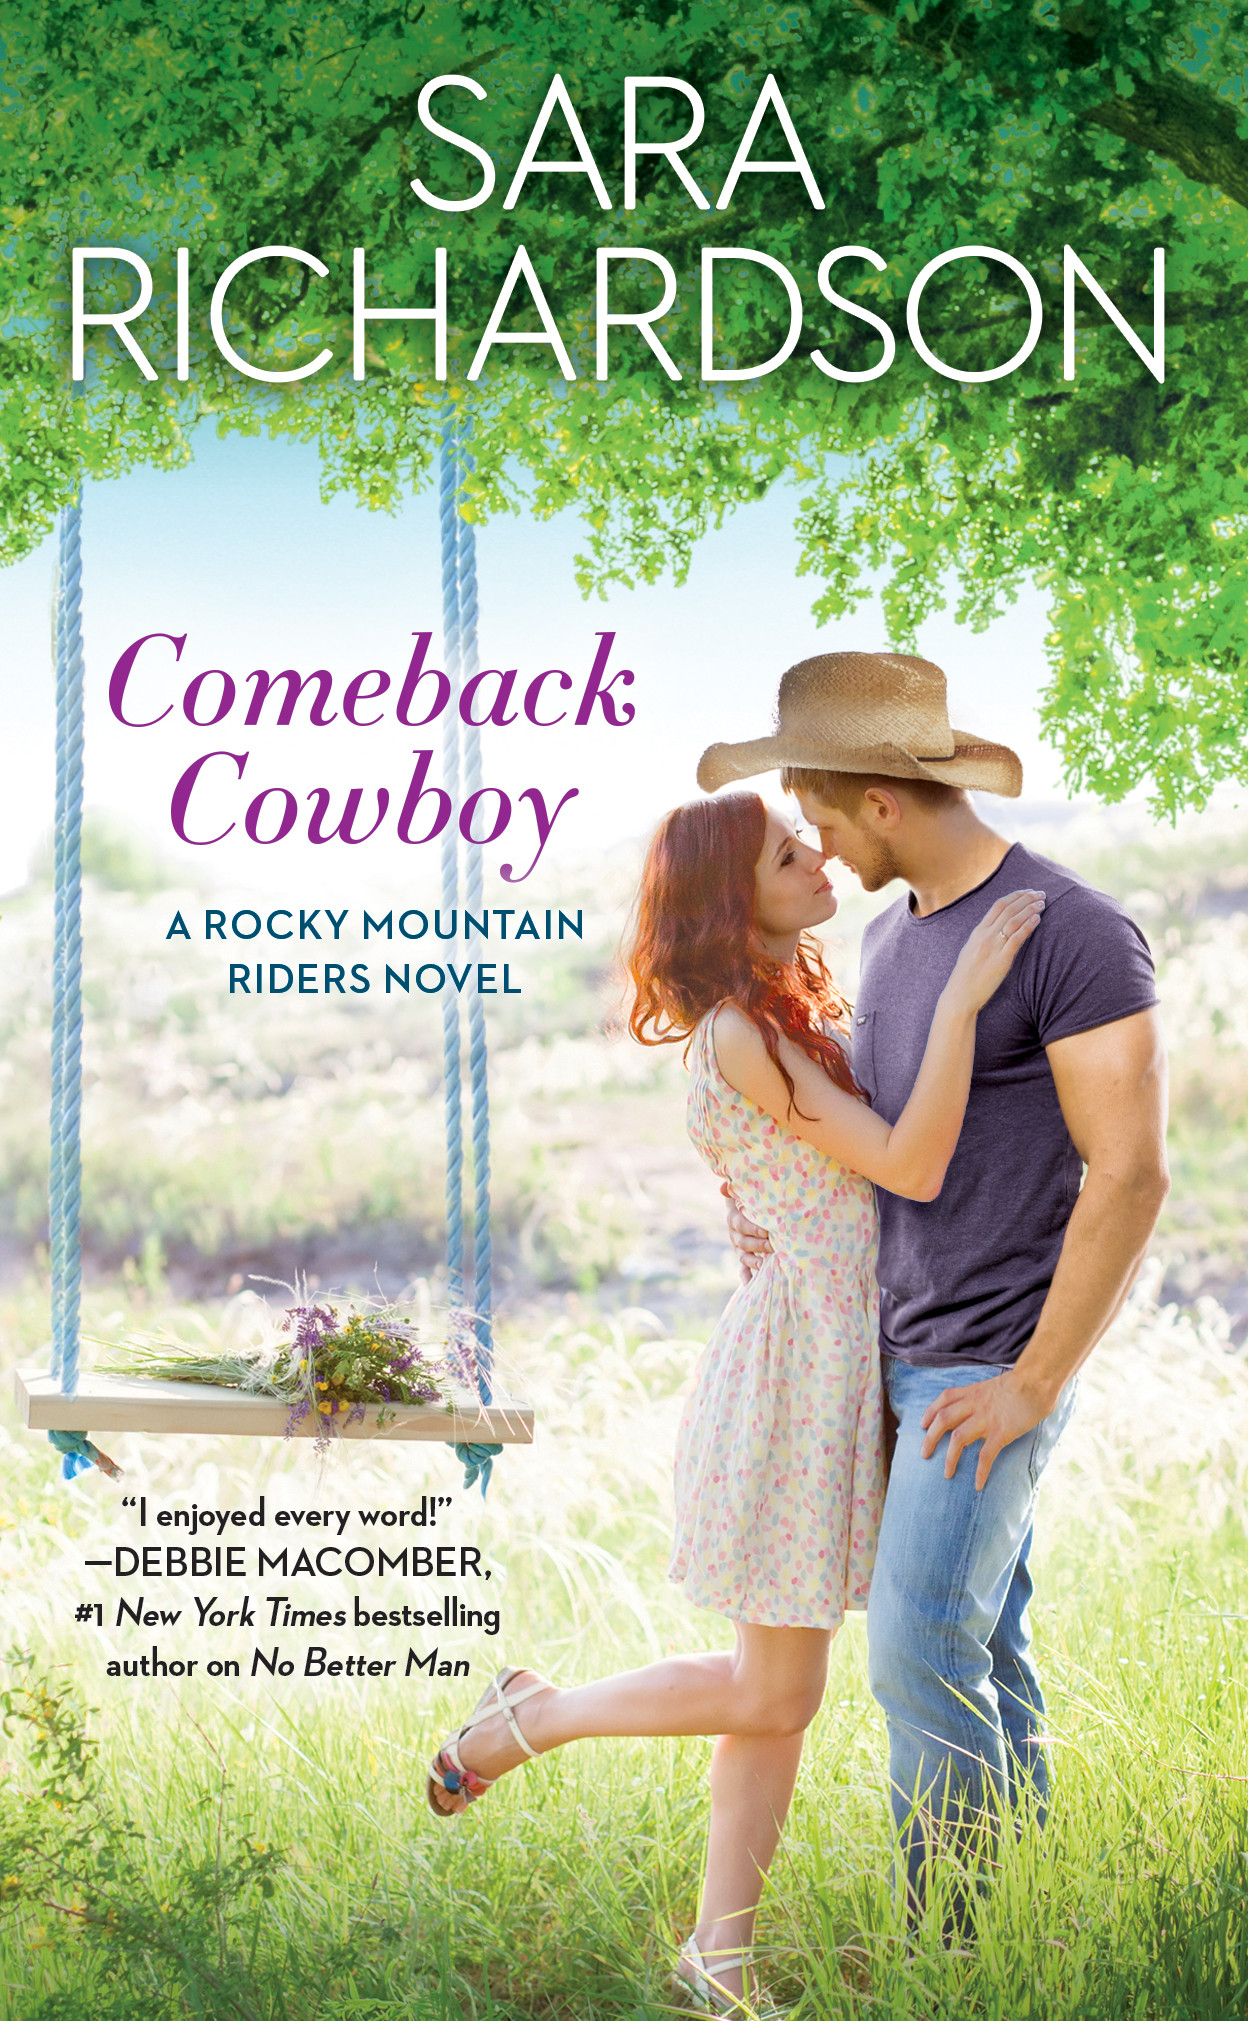 Release Day Blitz & Giveaway: Comeback Cowboy by Sara Richardson